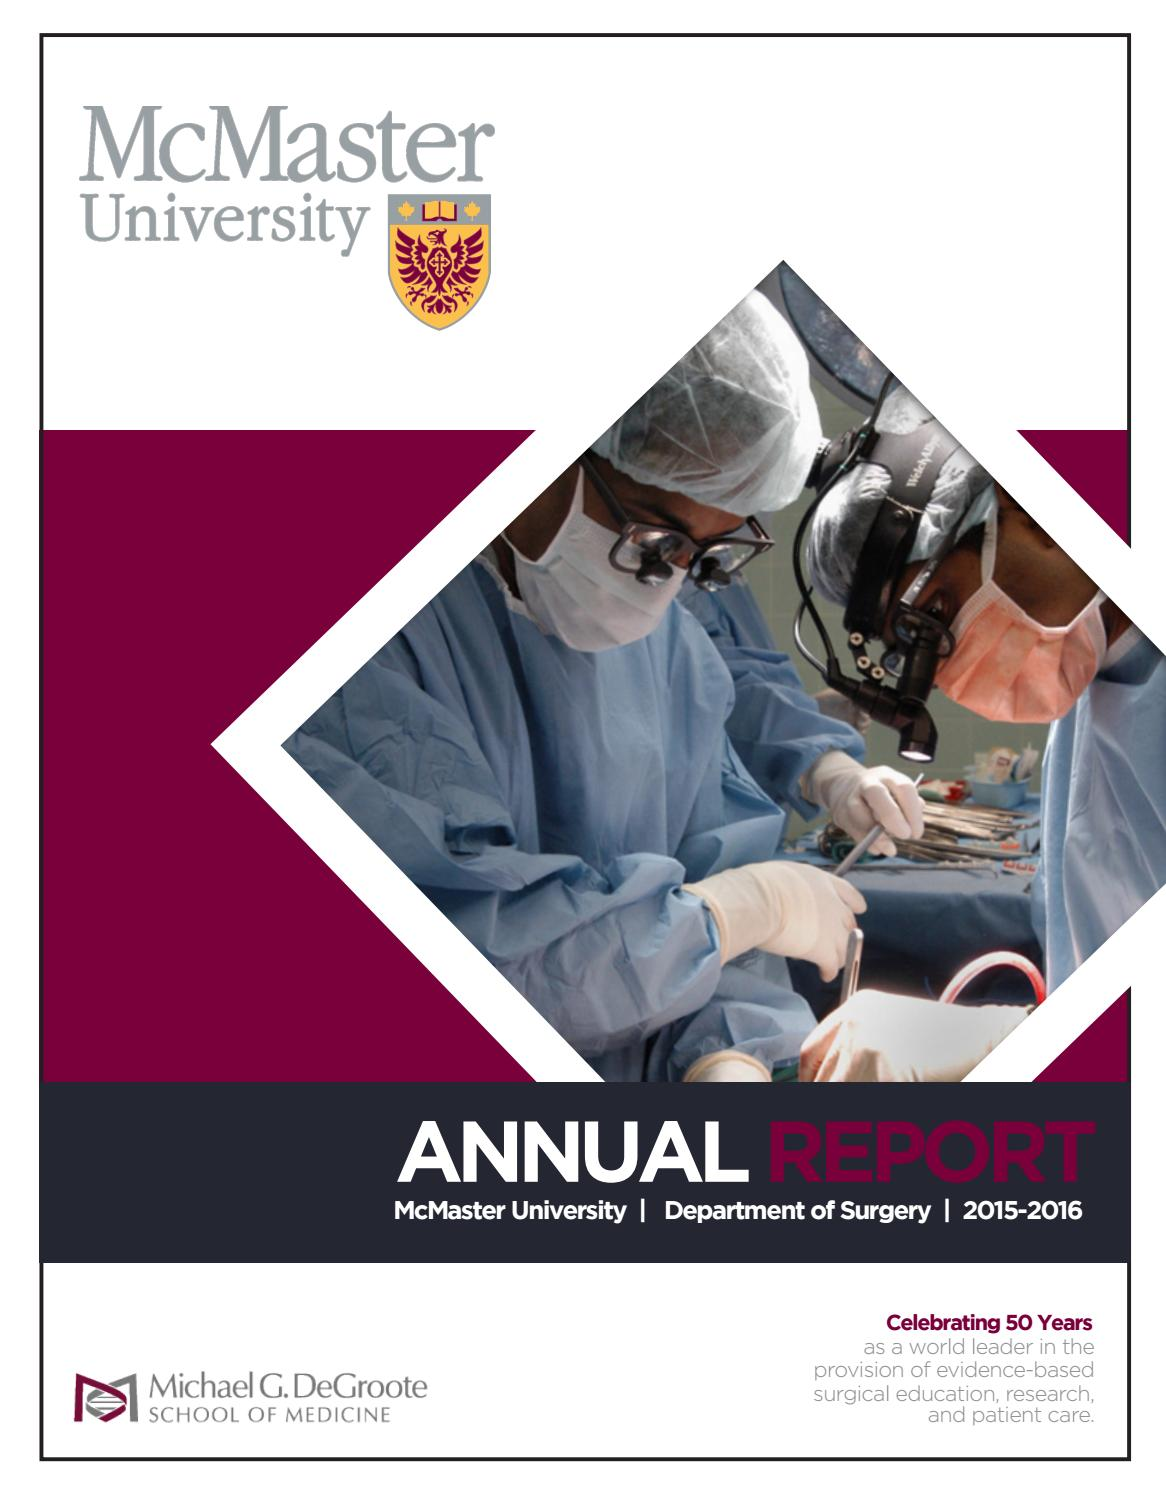 Annual Report 2015-2016 by McMaster University Department of